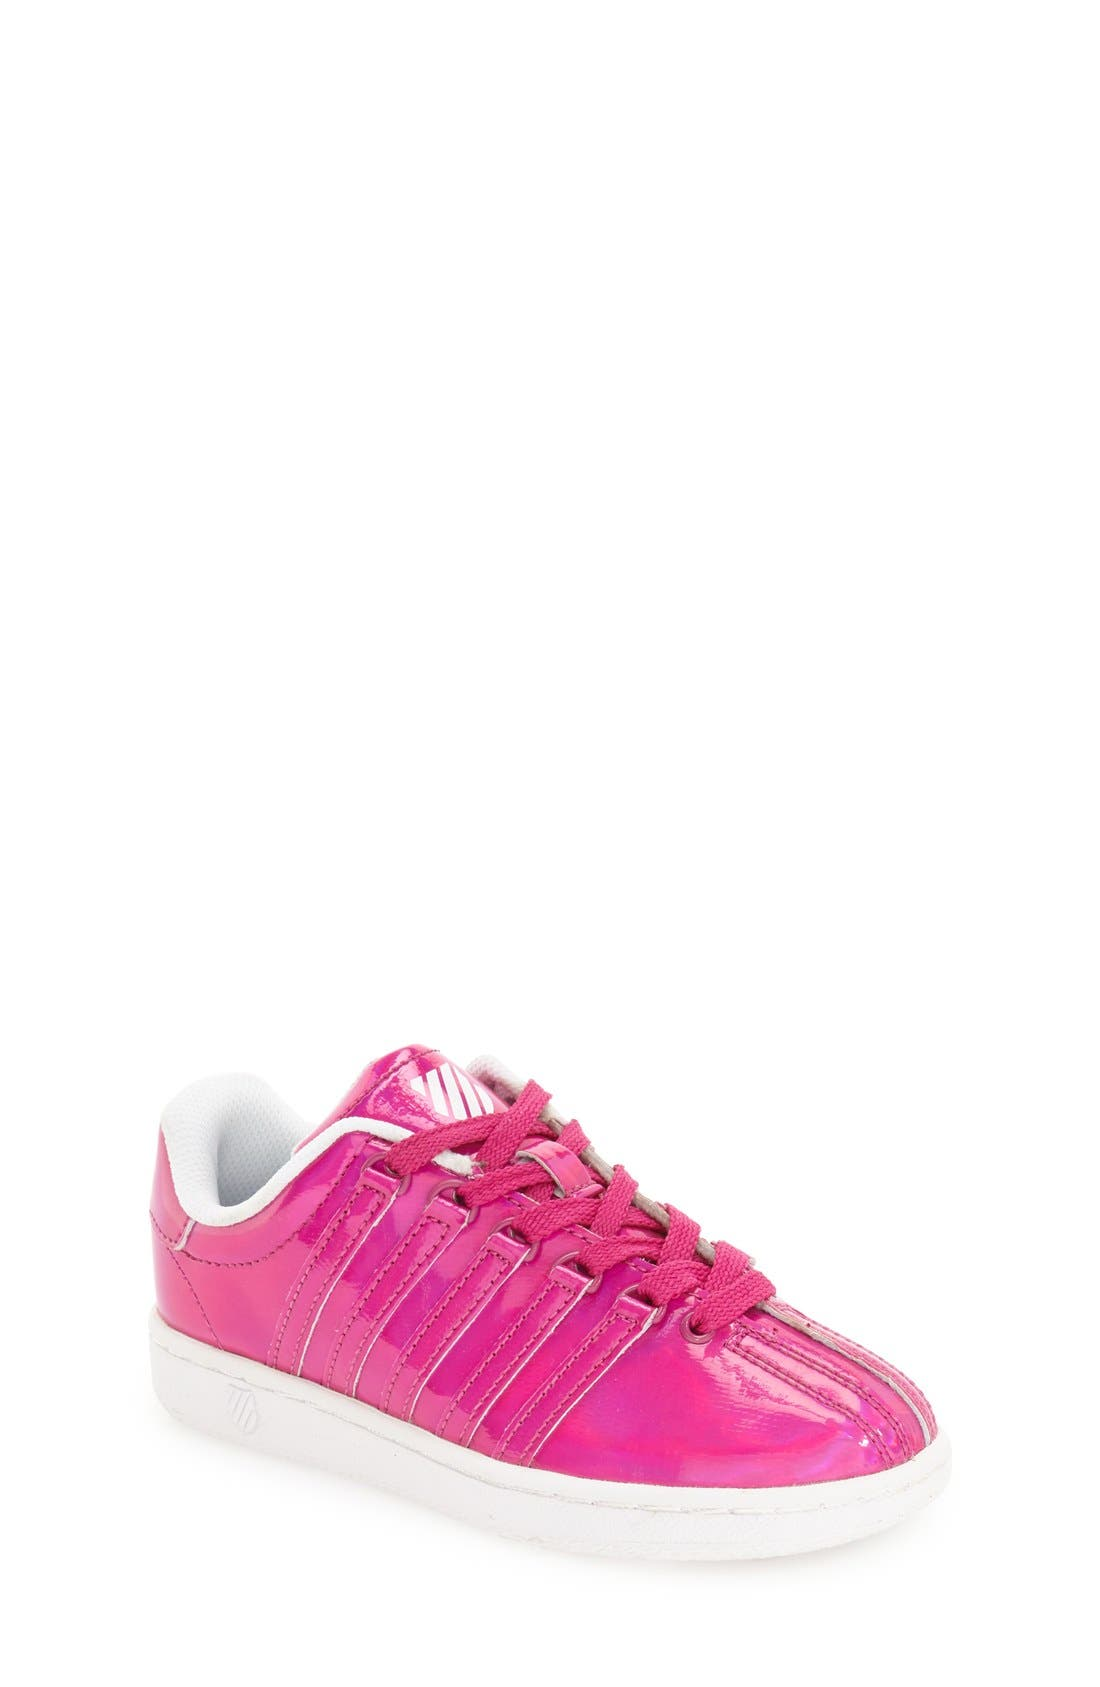 'Classic - Shine On' Sneaker,                         Main,                         color, Pink/ White